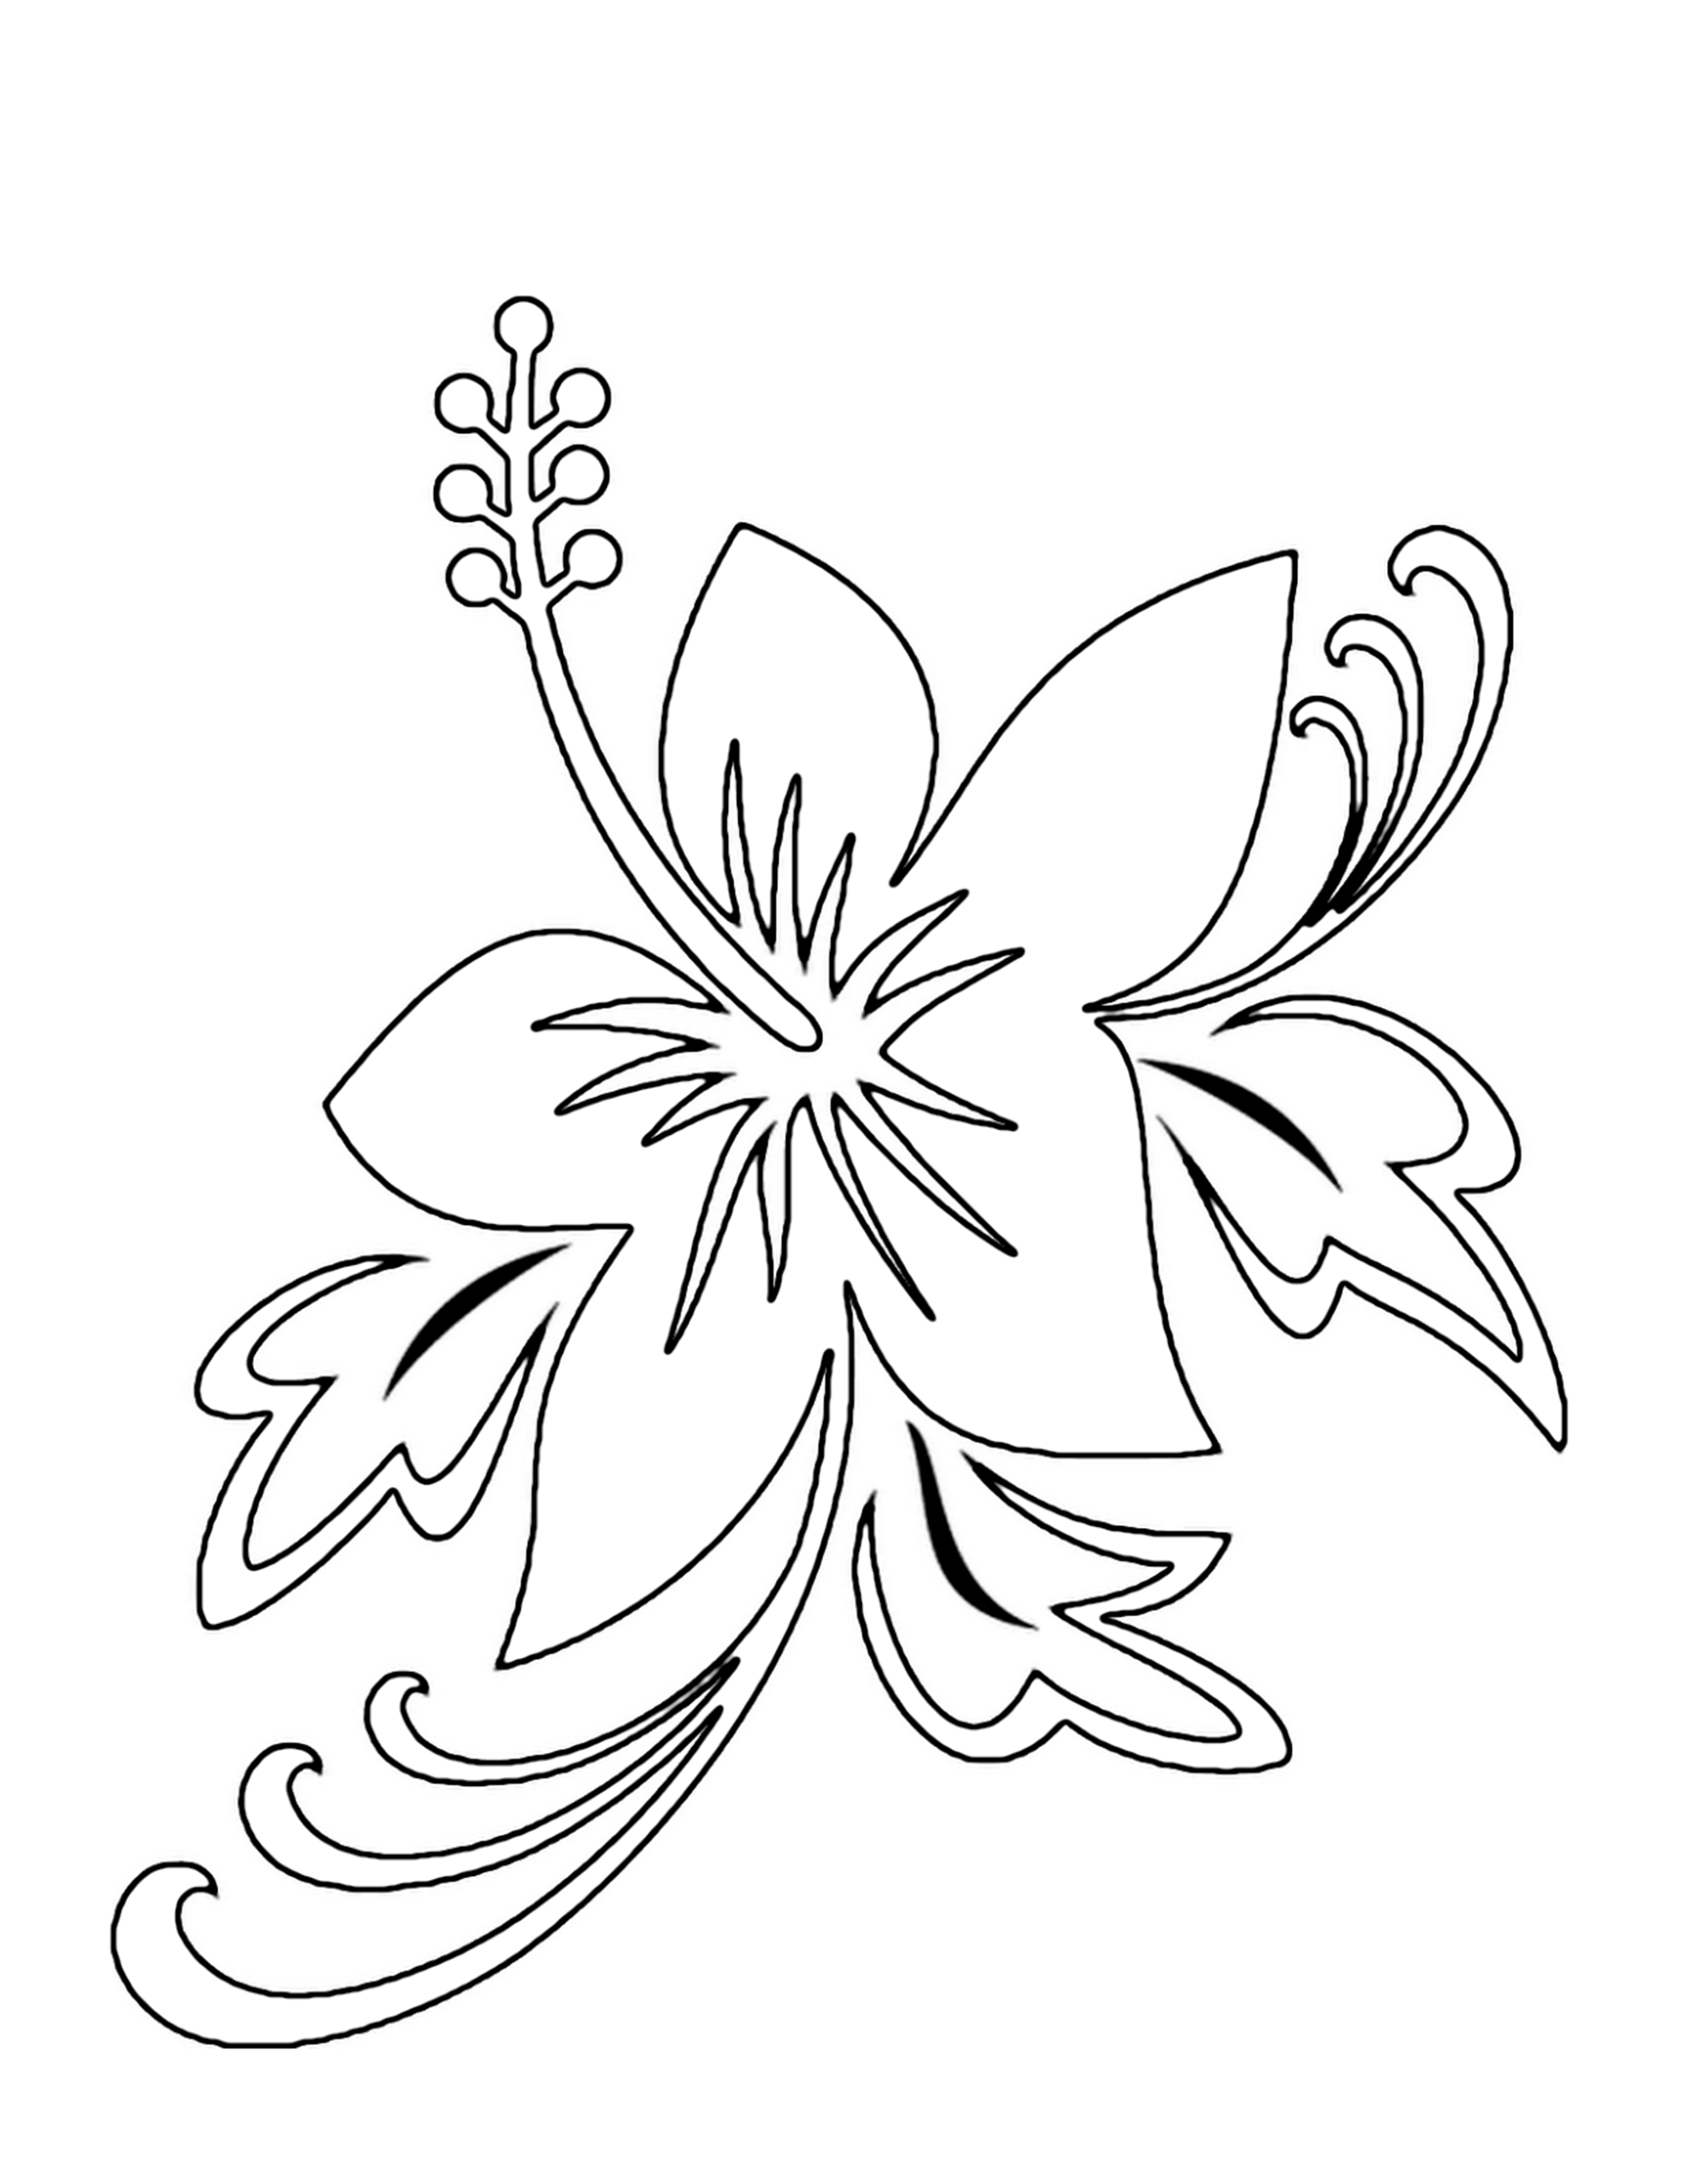 pictures of flowers to color free printable flower coloring pages for kids best flowers color of pictures to